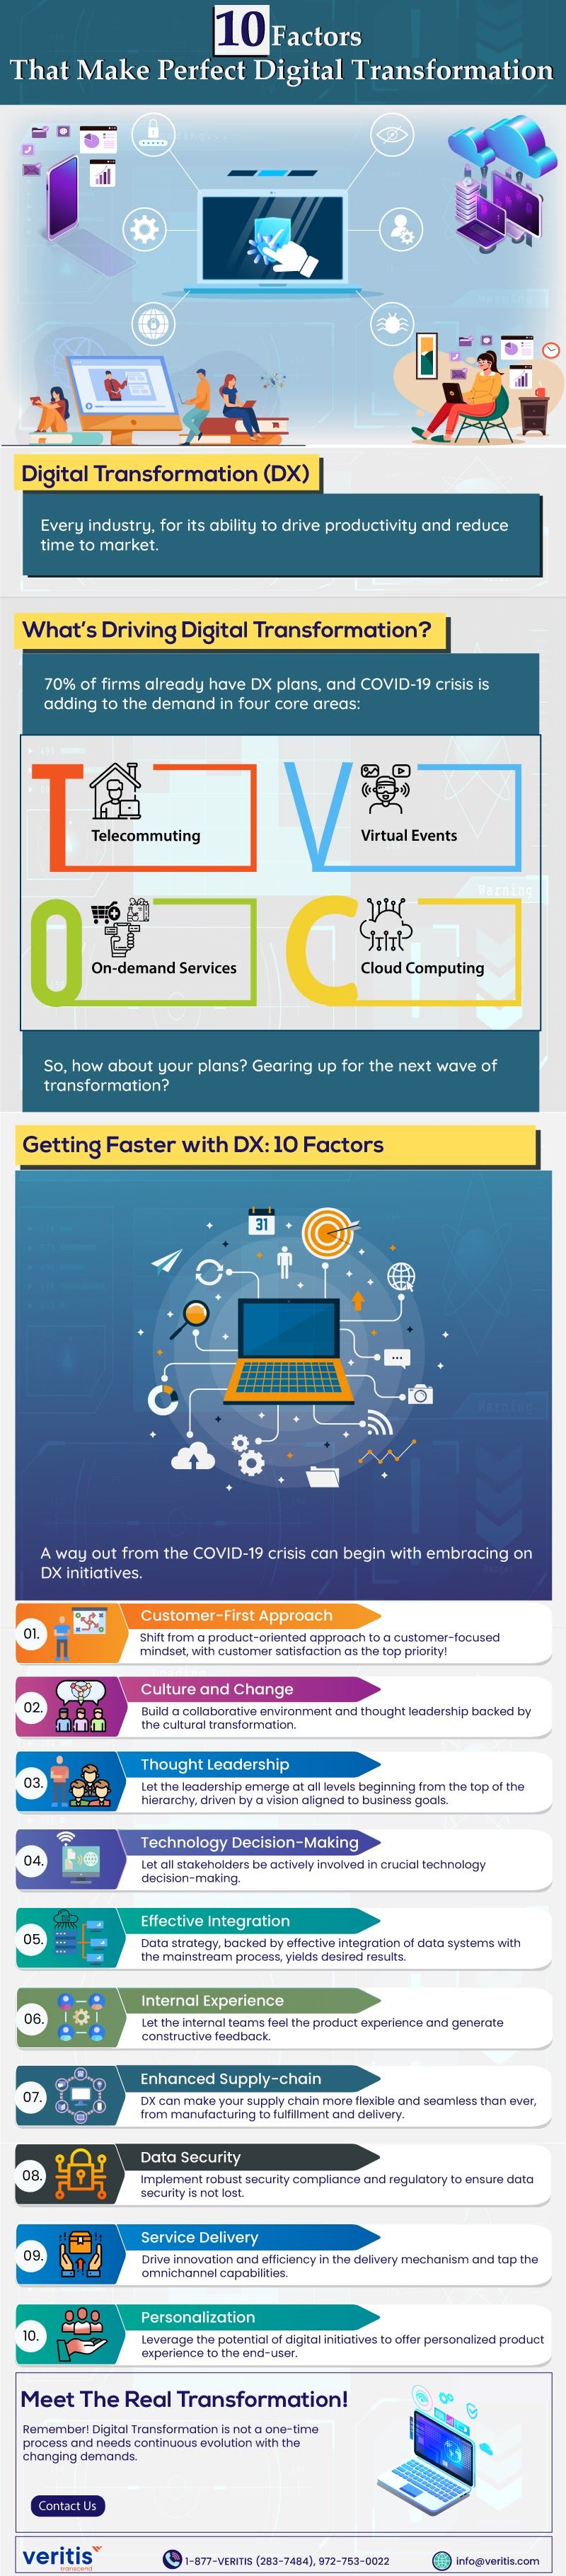 10 Factors That Make Perfect Digital Transformation #infographic